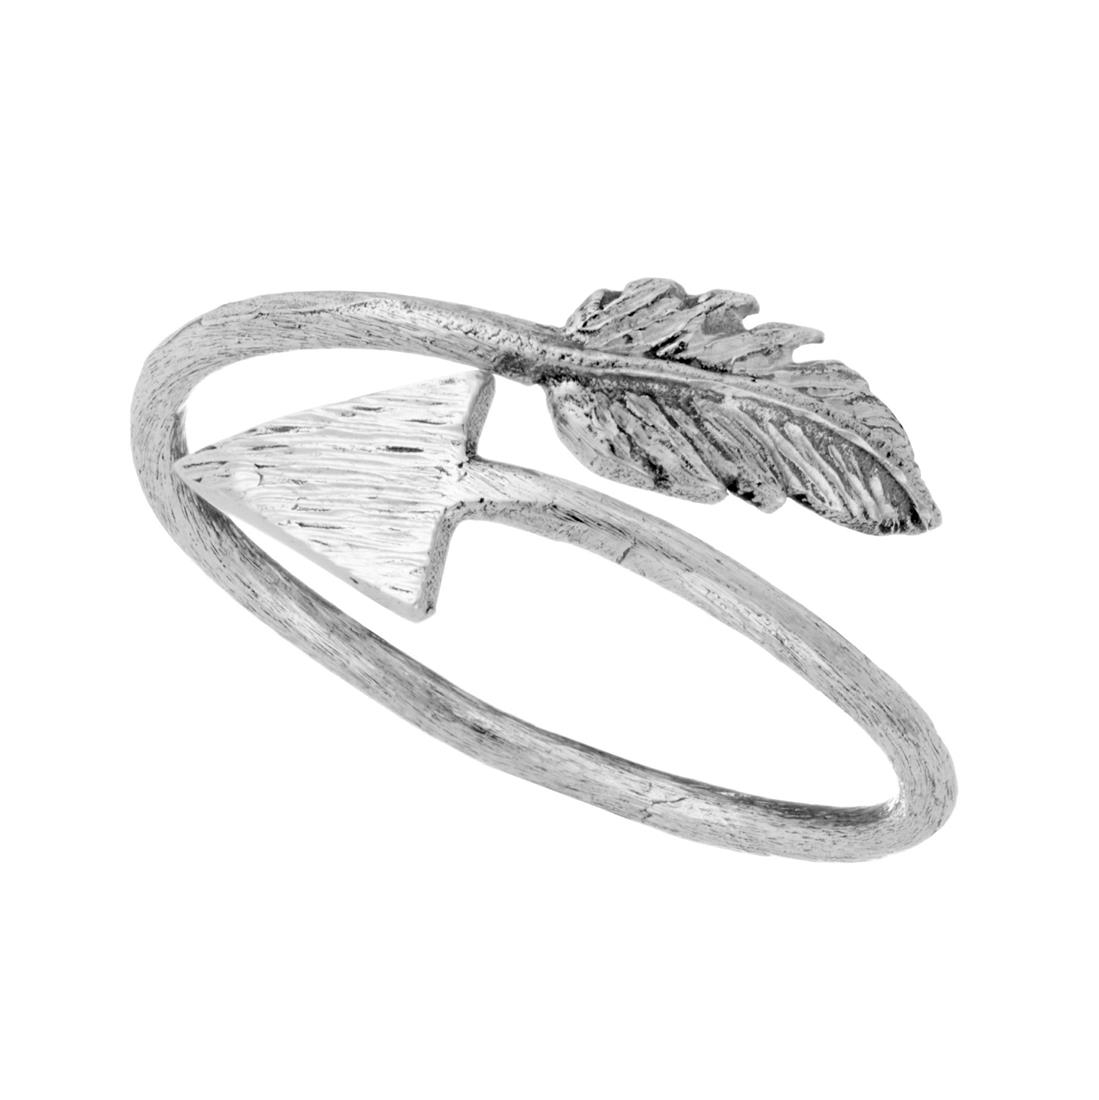 Satin Silver Arrow Wraparound Adjustable Ring For Most Current Wrap Around Arrow Rings (View 4 of 25)